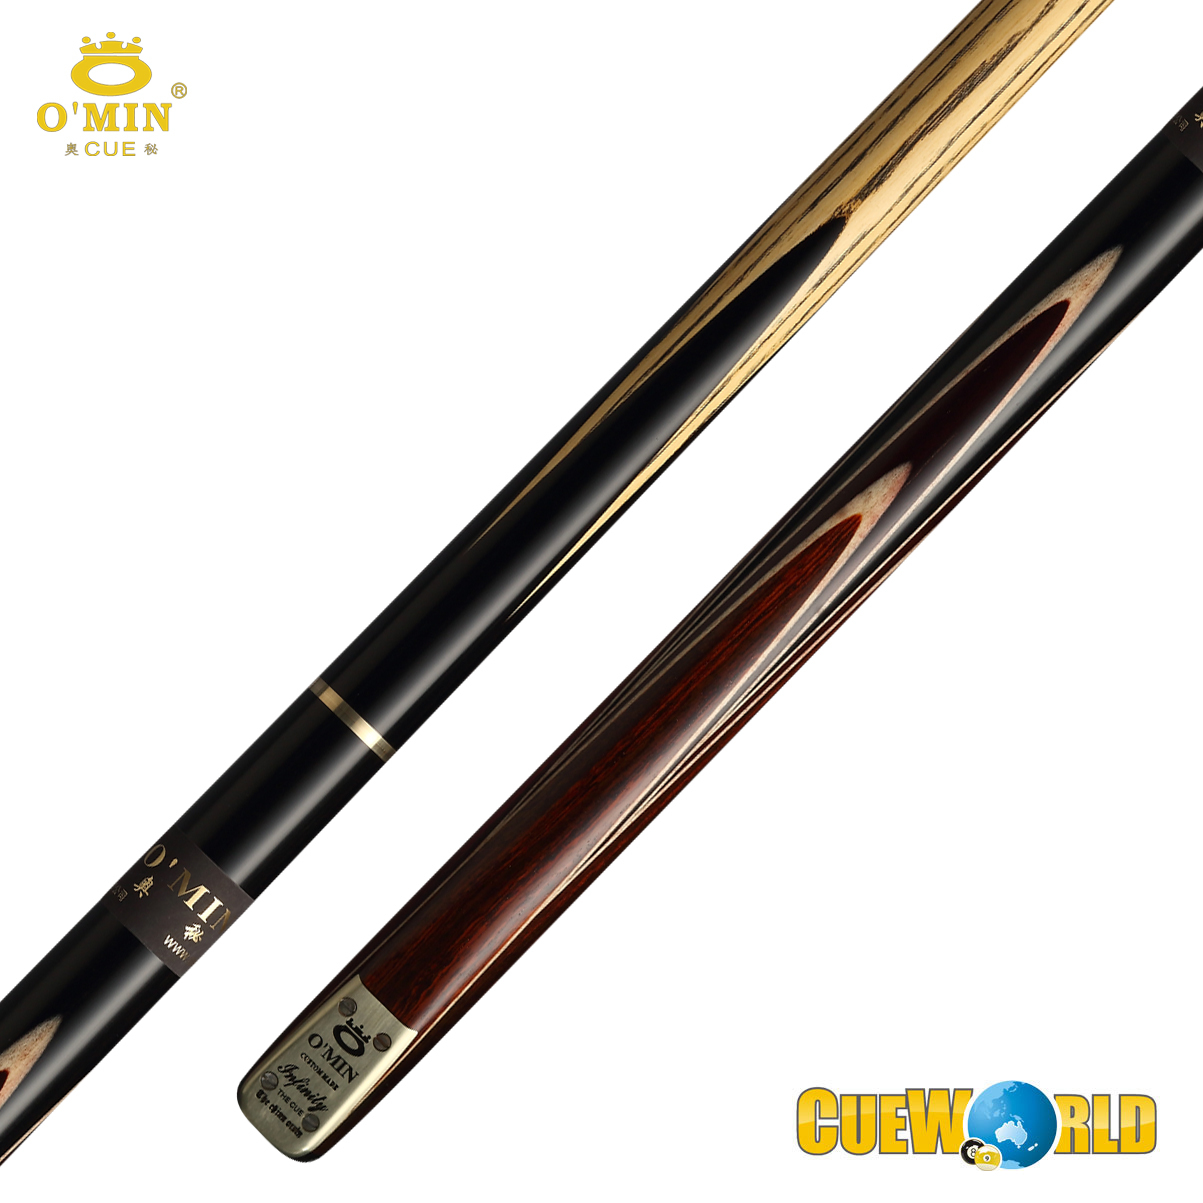 OMIN Snooker Cue Infinity 3/4